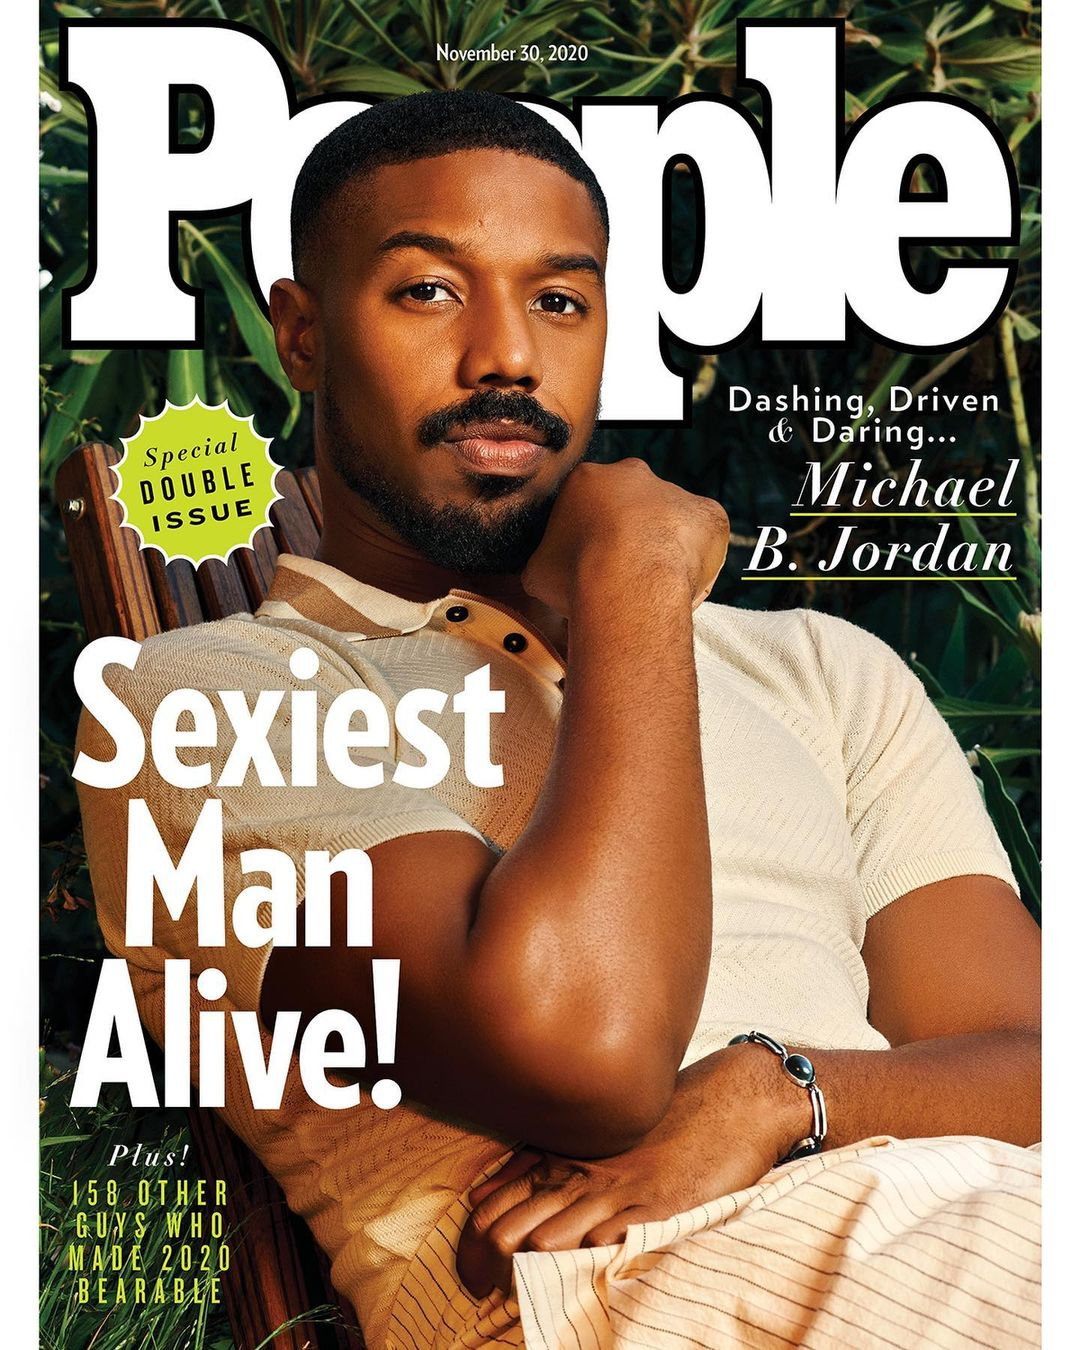 michael-b-jordan-workout-2020-sexiest-man-alive